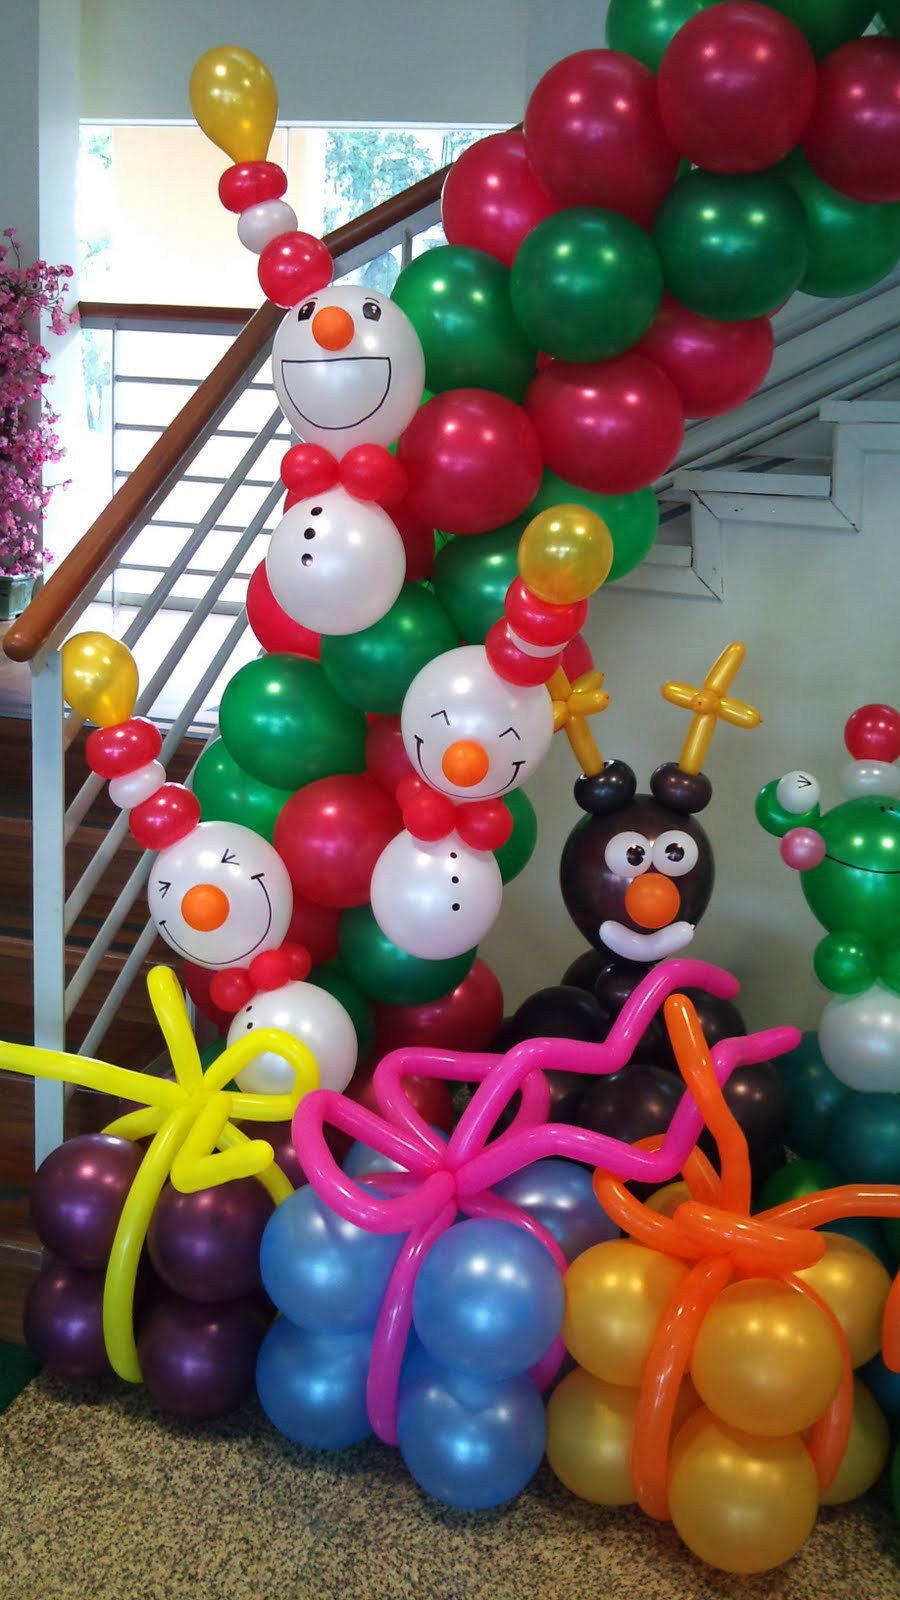 Decoracion navide a con globos christmas balloons and - Decoracion de navidad con globos ...